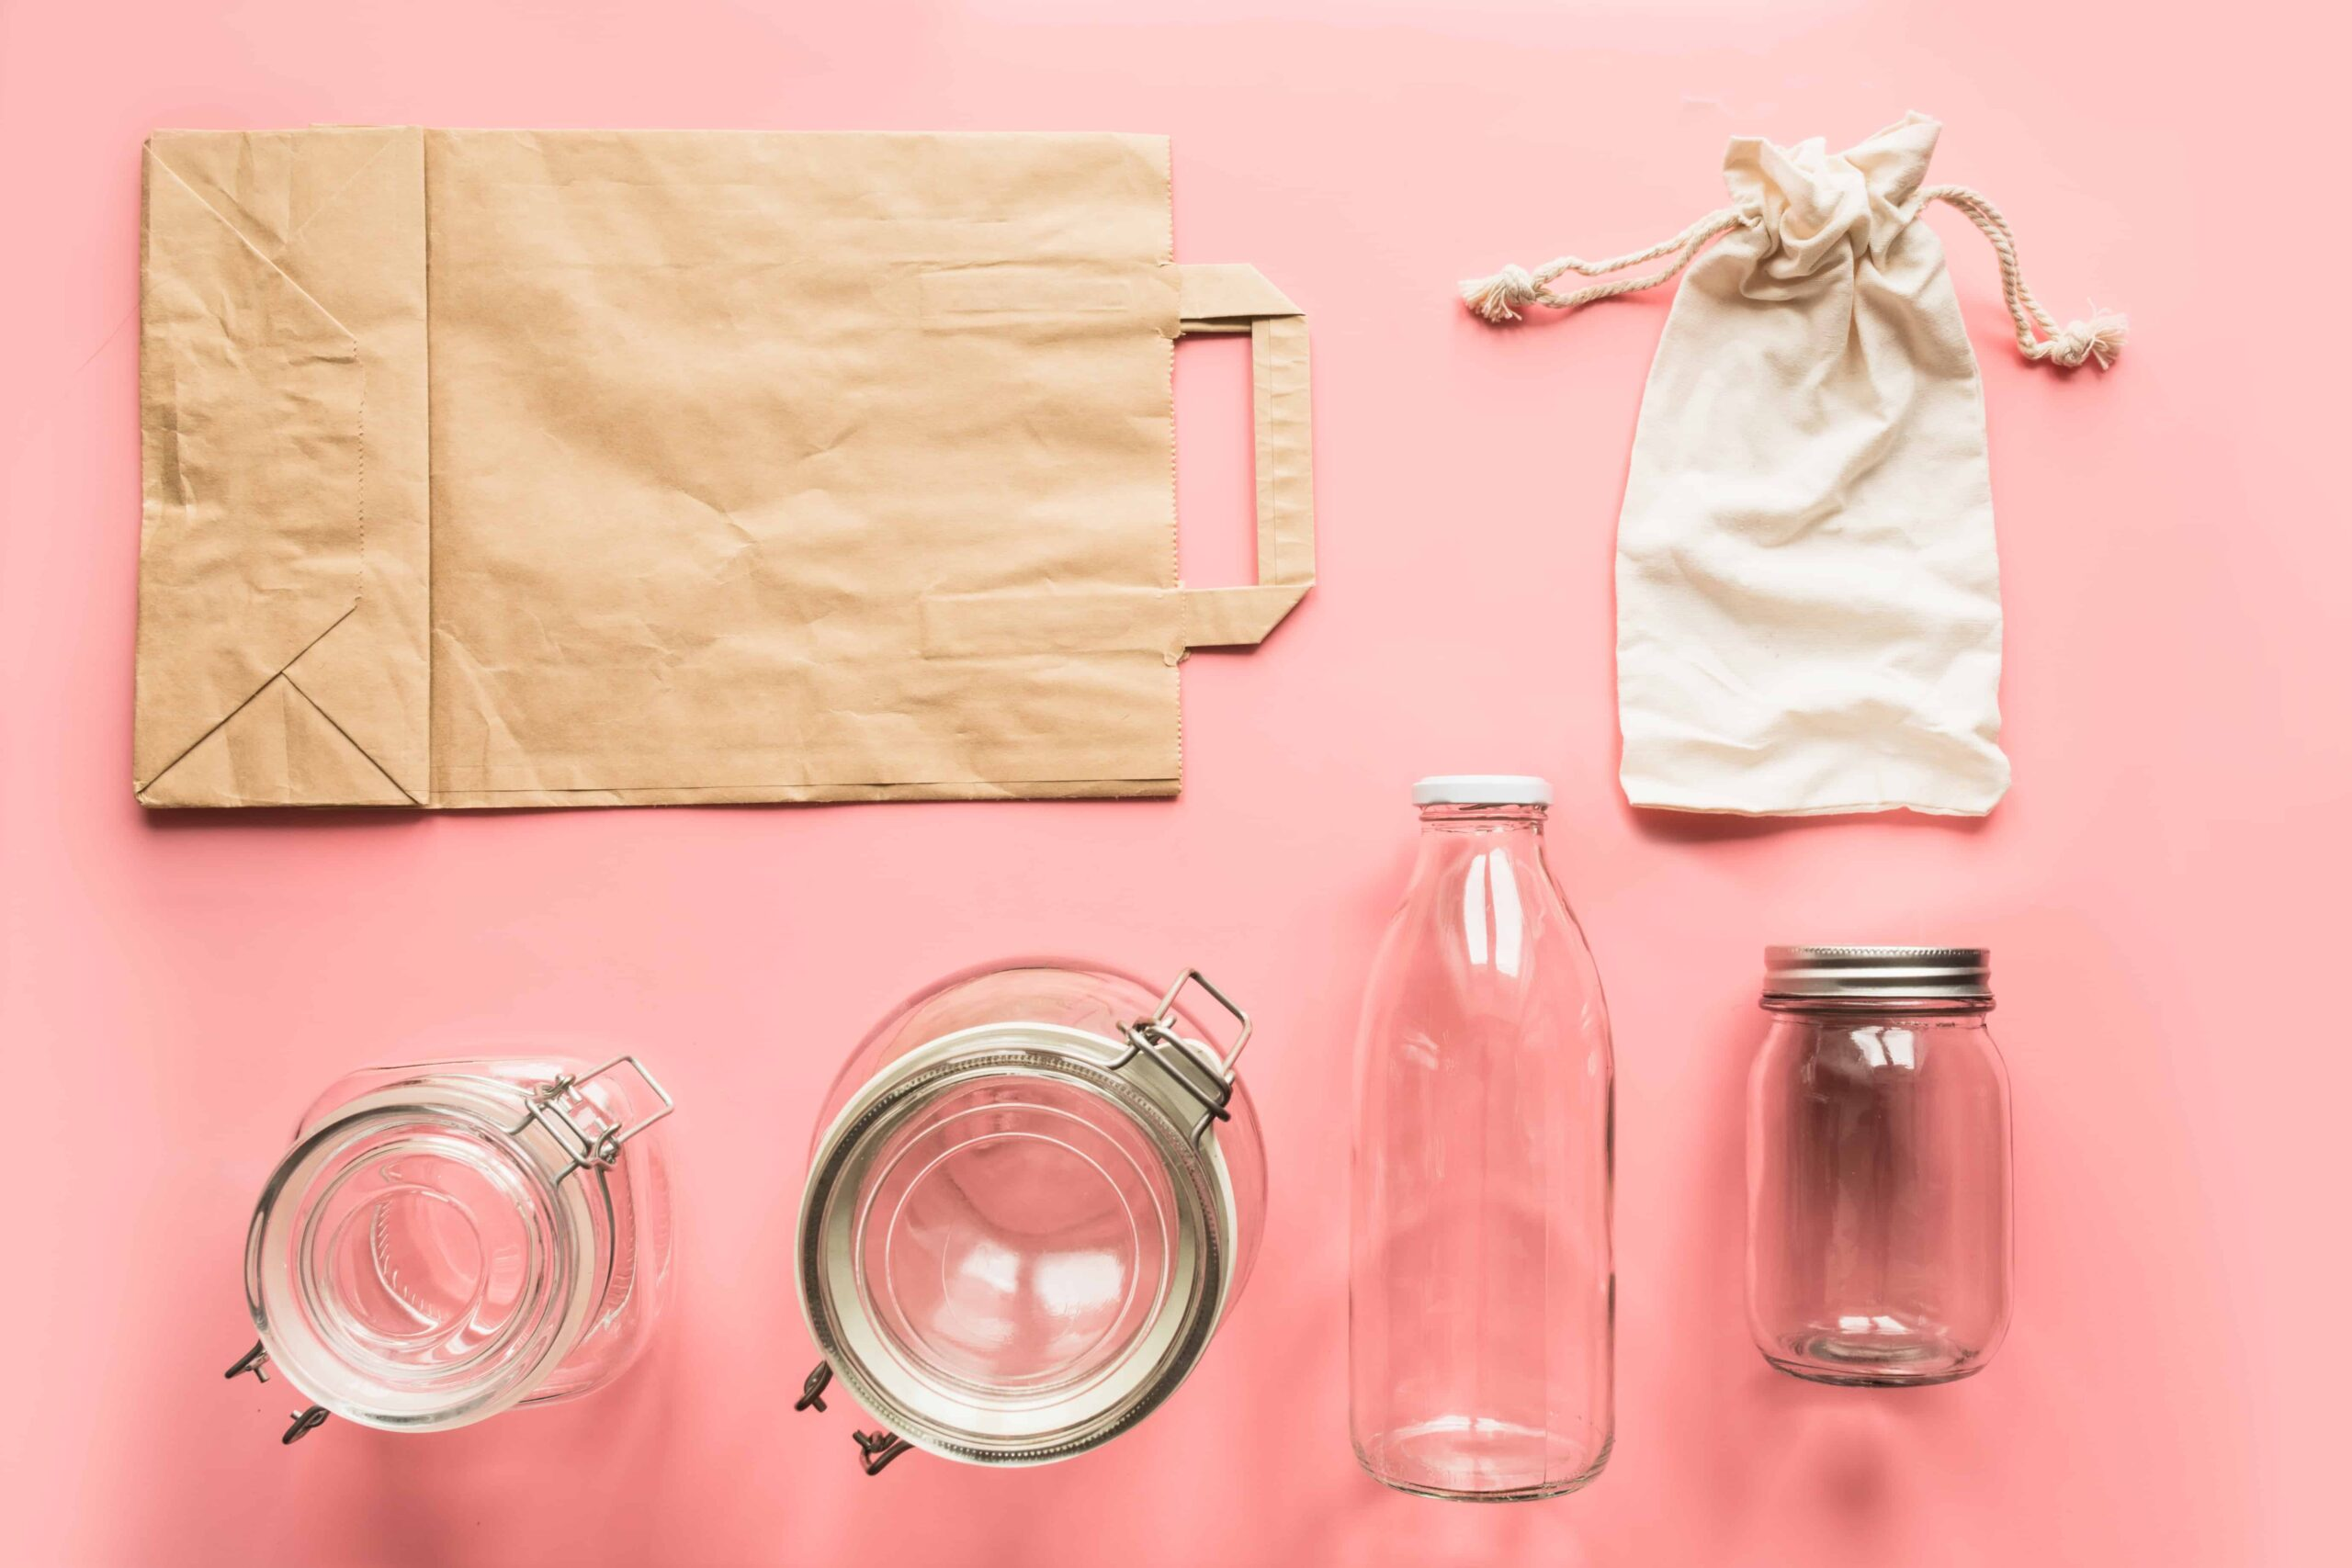 How to Put Together a Zero Waste Shopping Kit